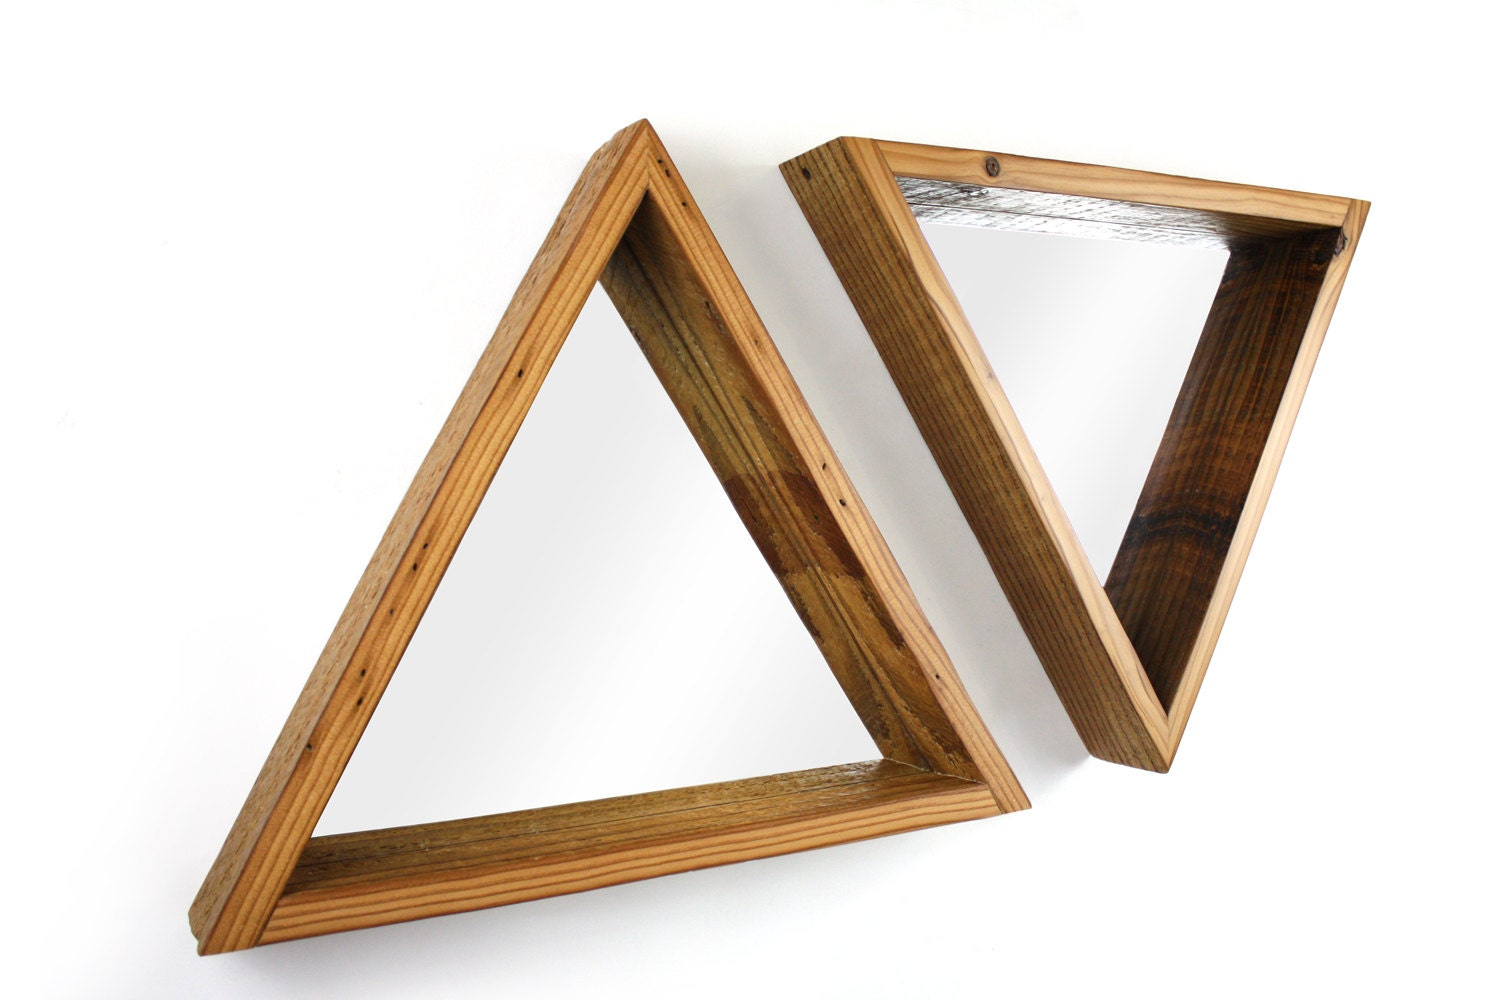 Triangle Framed Mirror Reclaimed Wood Frame Modern by weareMFEO